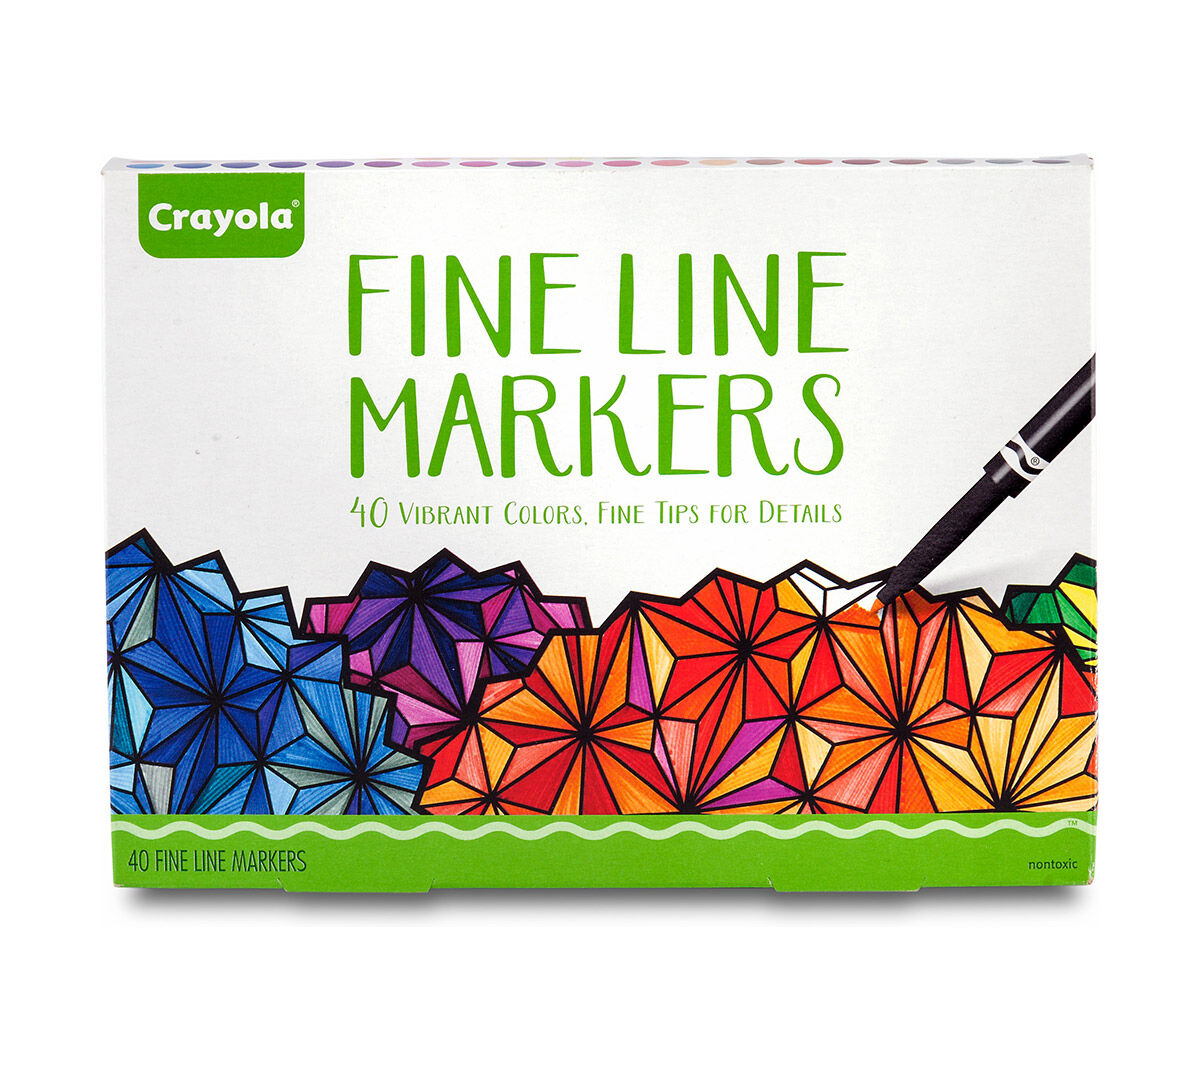 crayola 40 ct vibrant fine line markers with fine tips for detail